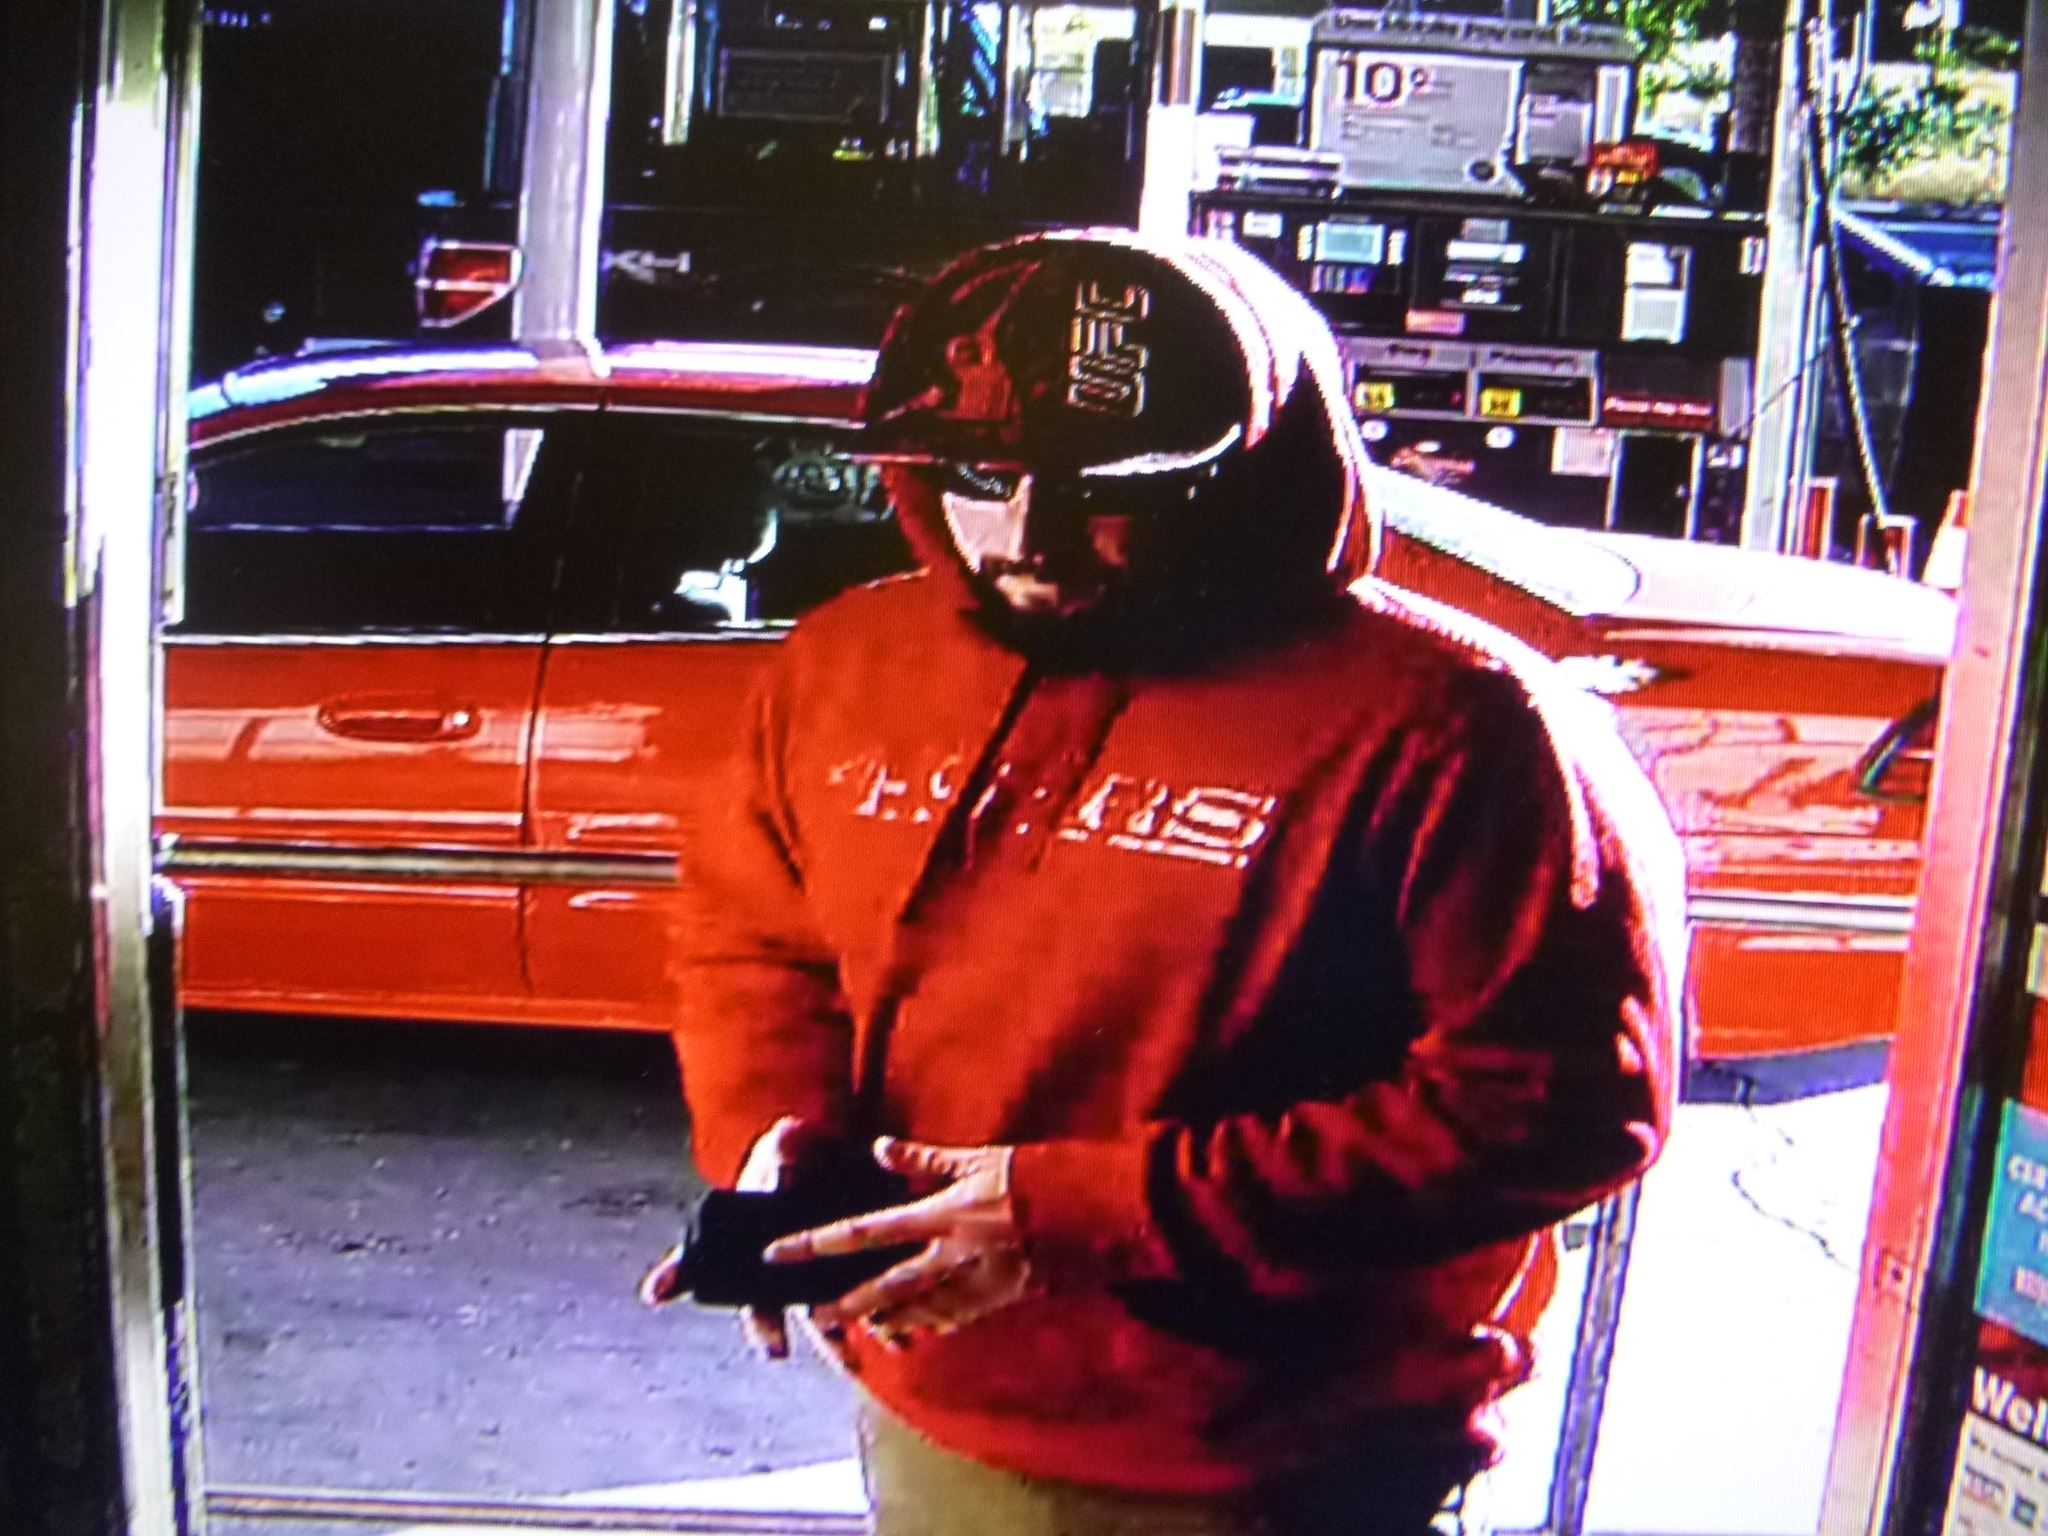 Photo one of the suspect, a white male adult, in his mid to late 30's, approximately 5 feet 10 inche